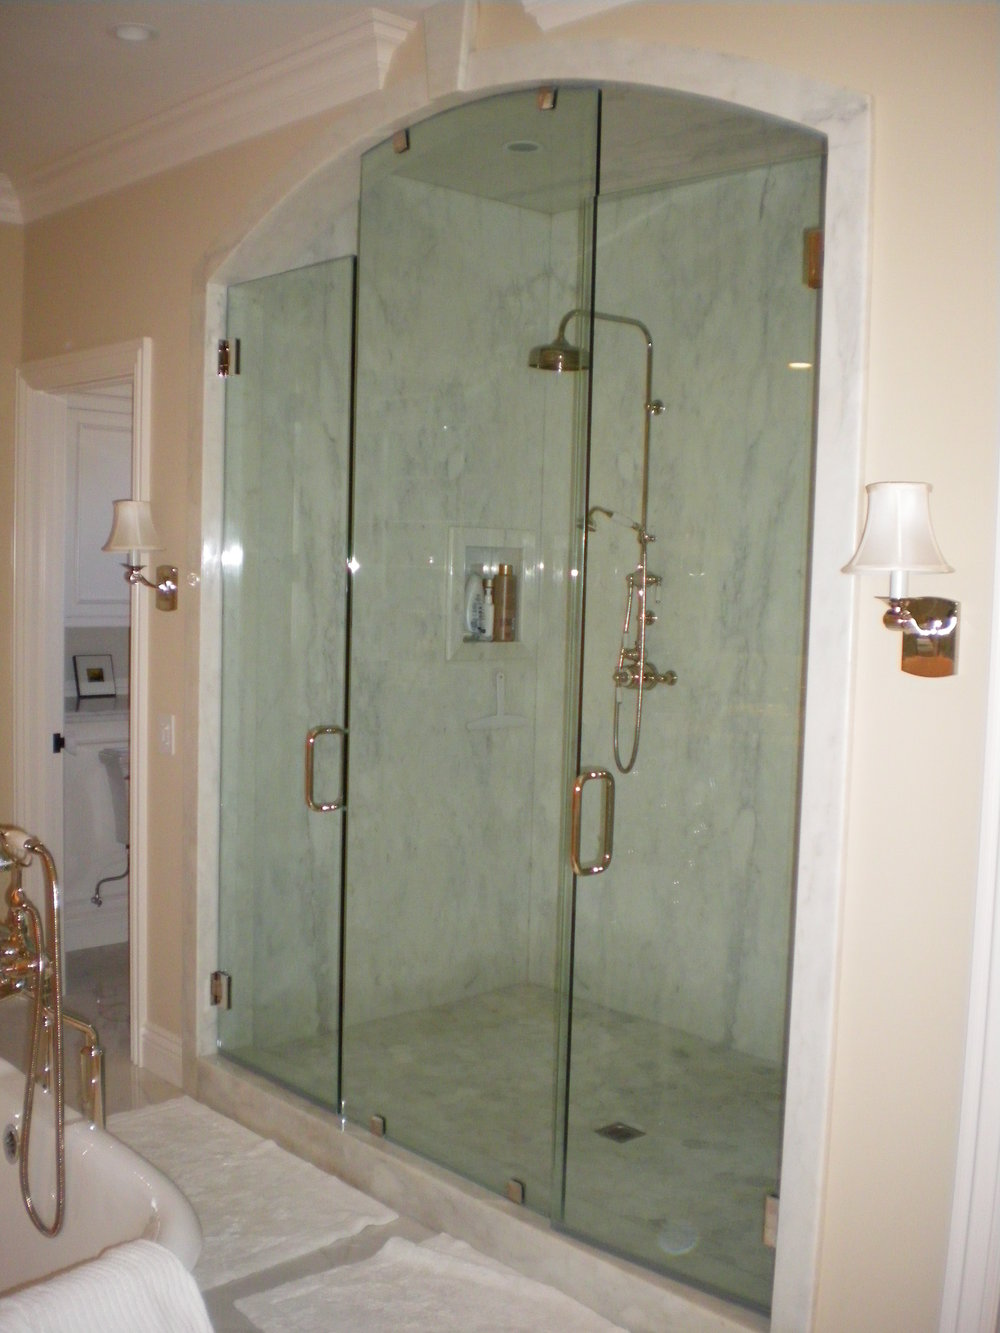 Shower-Doors-Residential-Photos-26.jpg